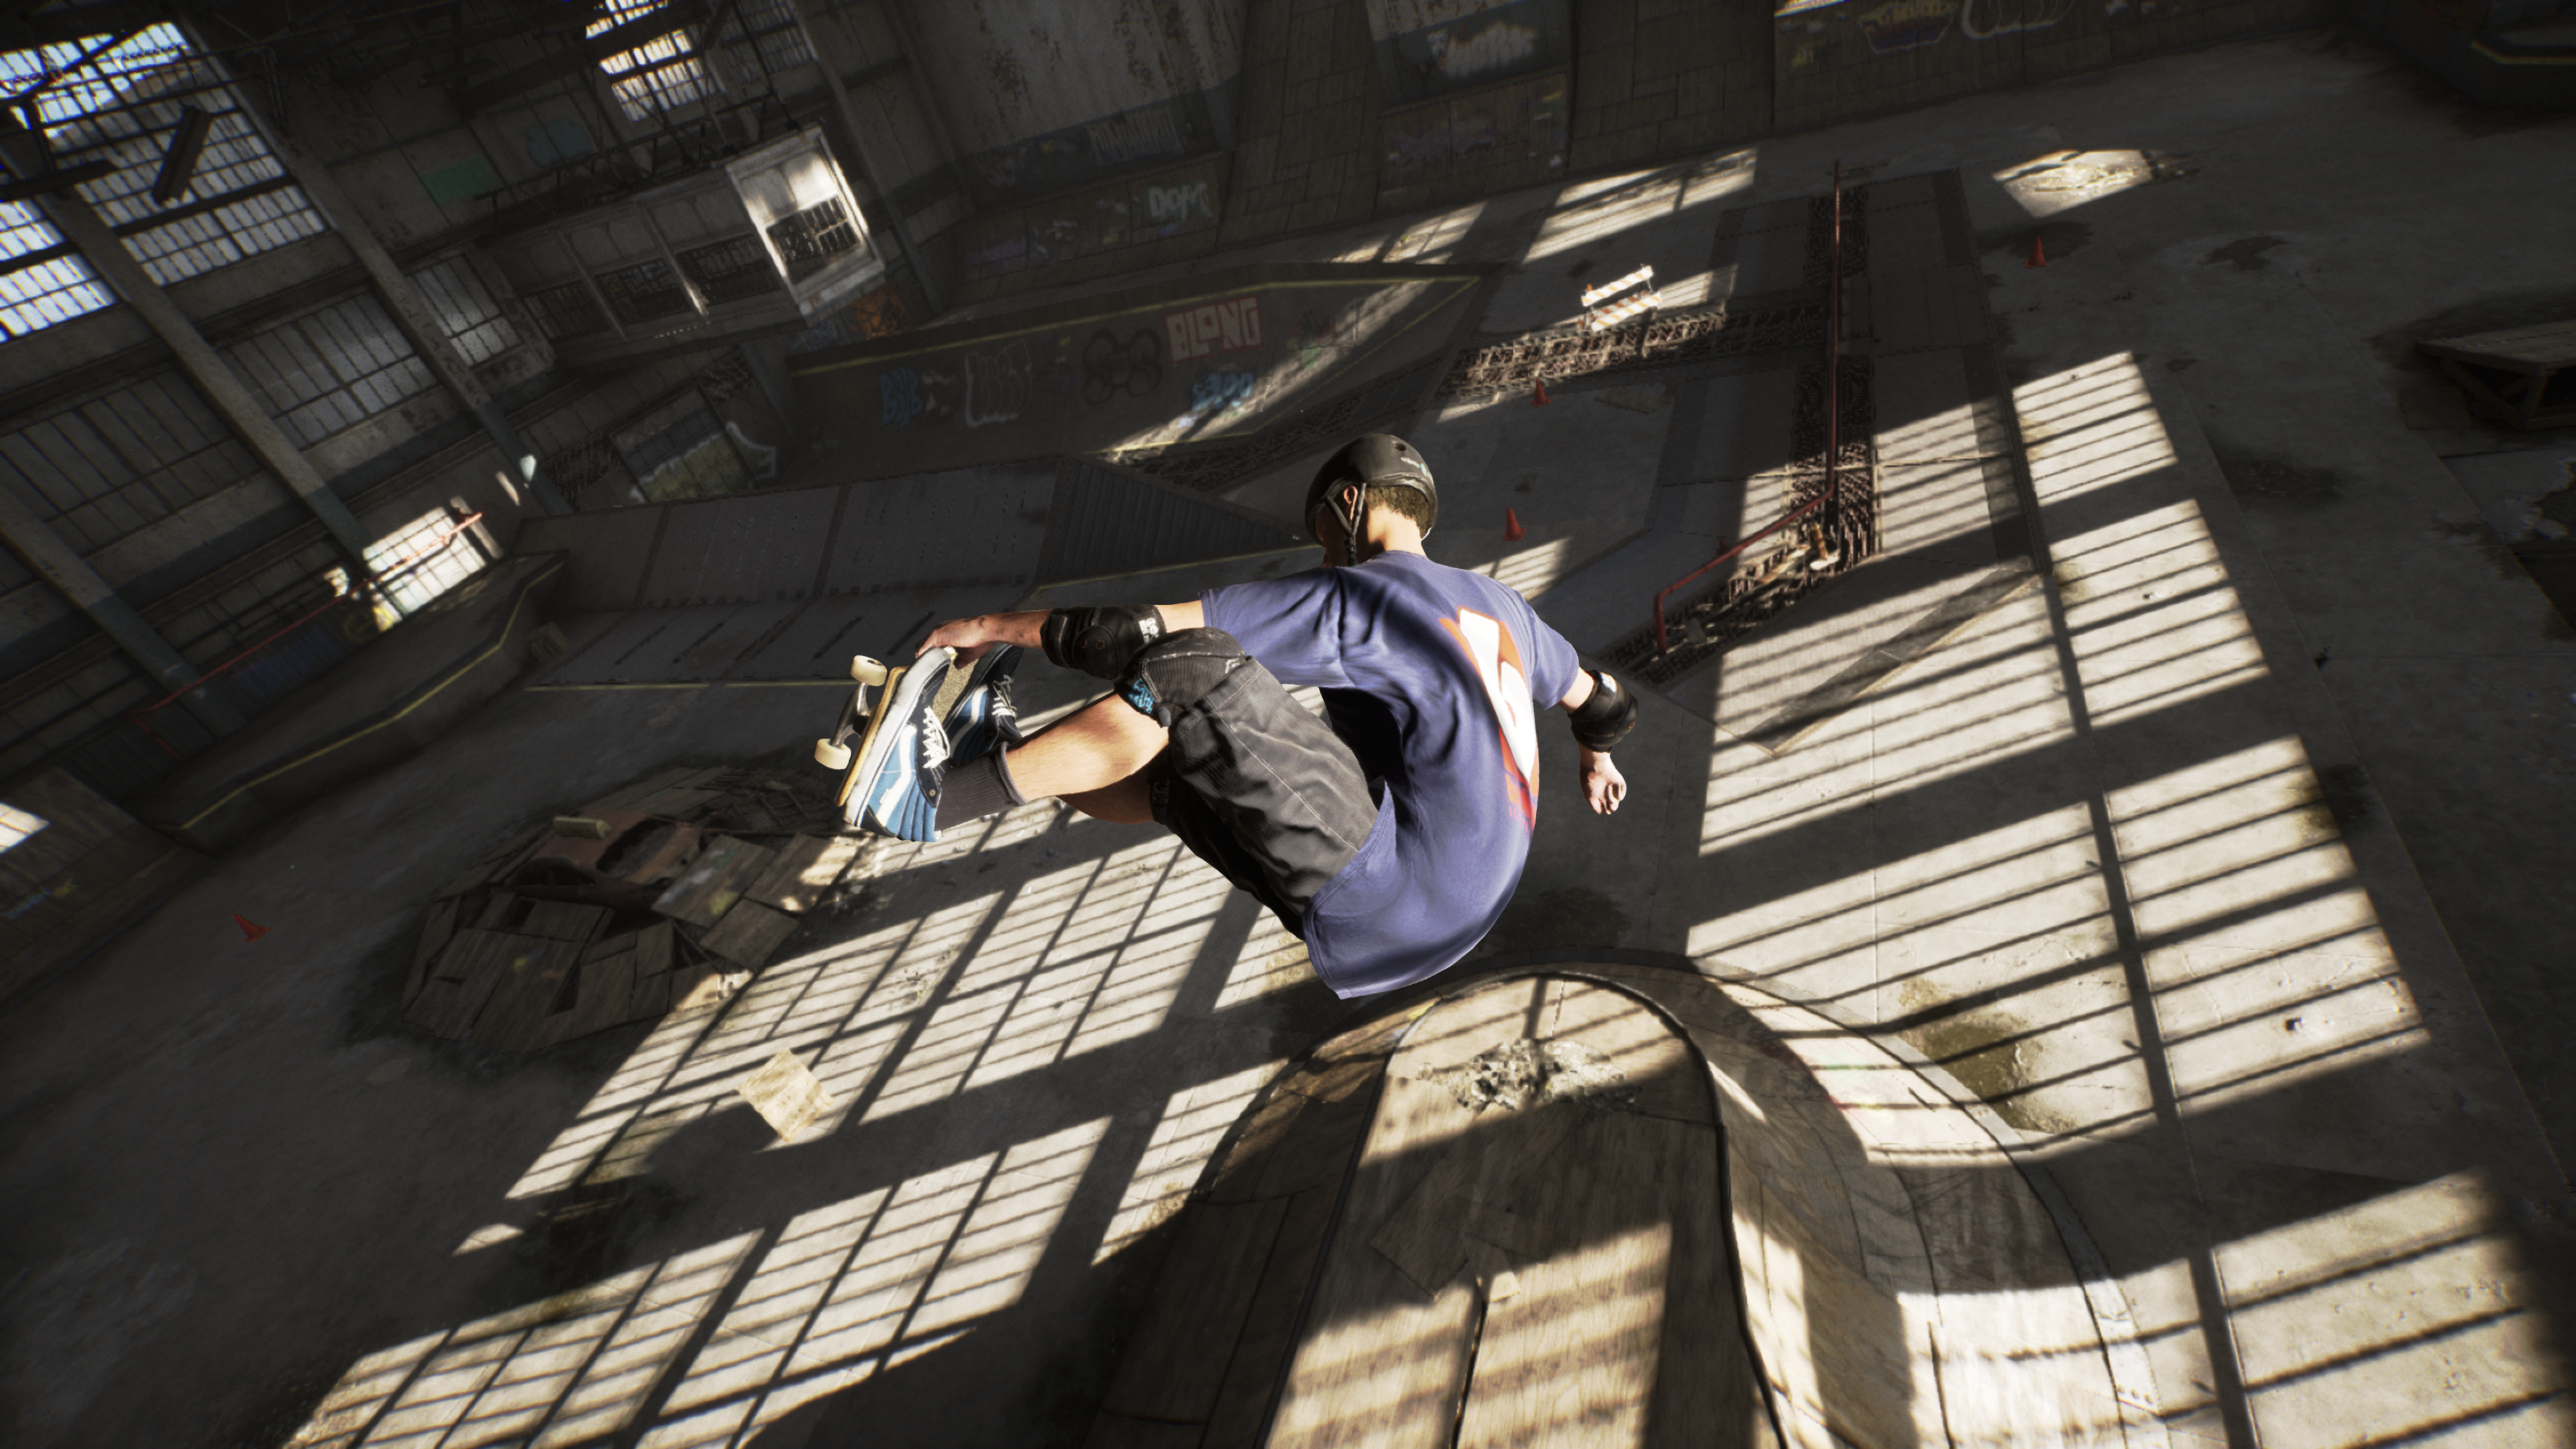 Tony Hawk's Pro Skater 1 + 2 - Gallery Screenshot 5